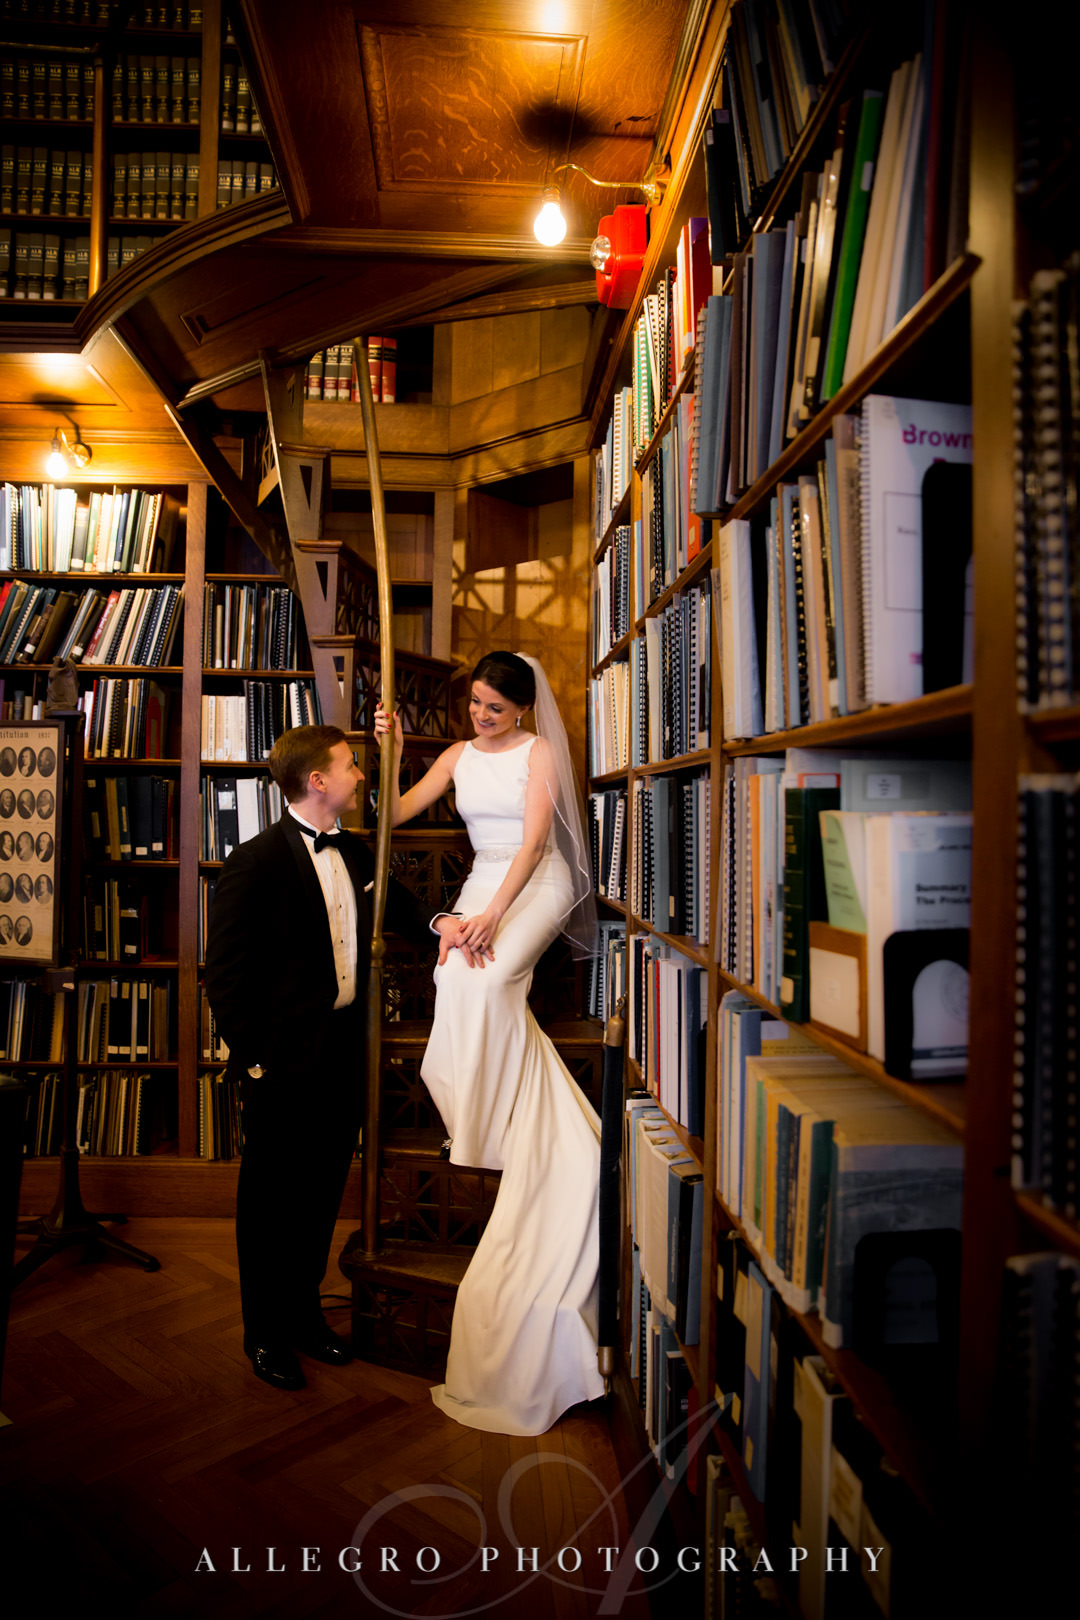 Bride and groom pose in library stacks of the rhode island state house, providence